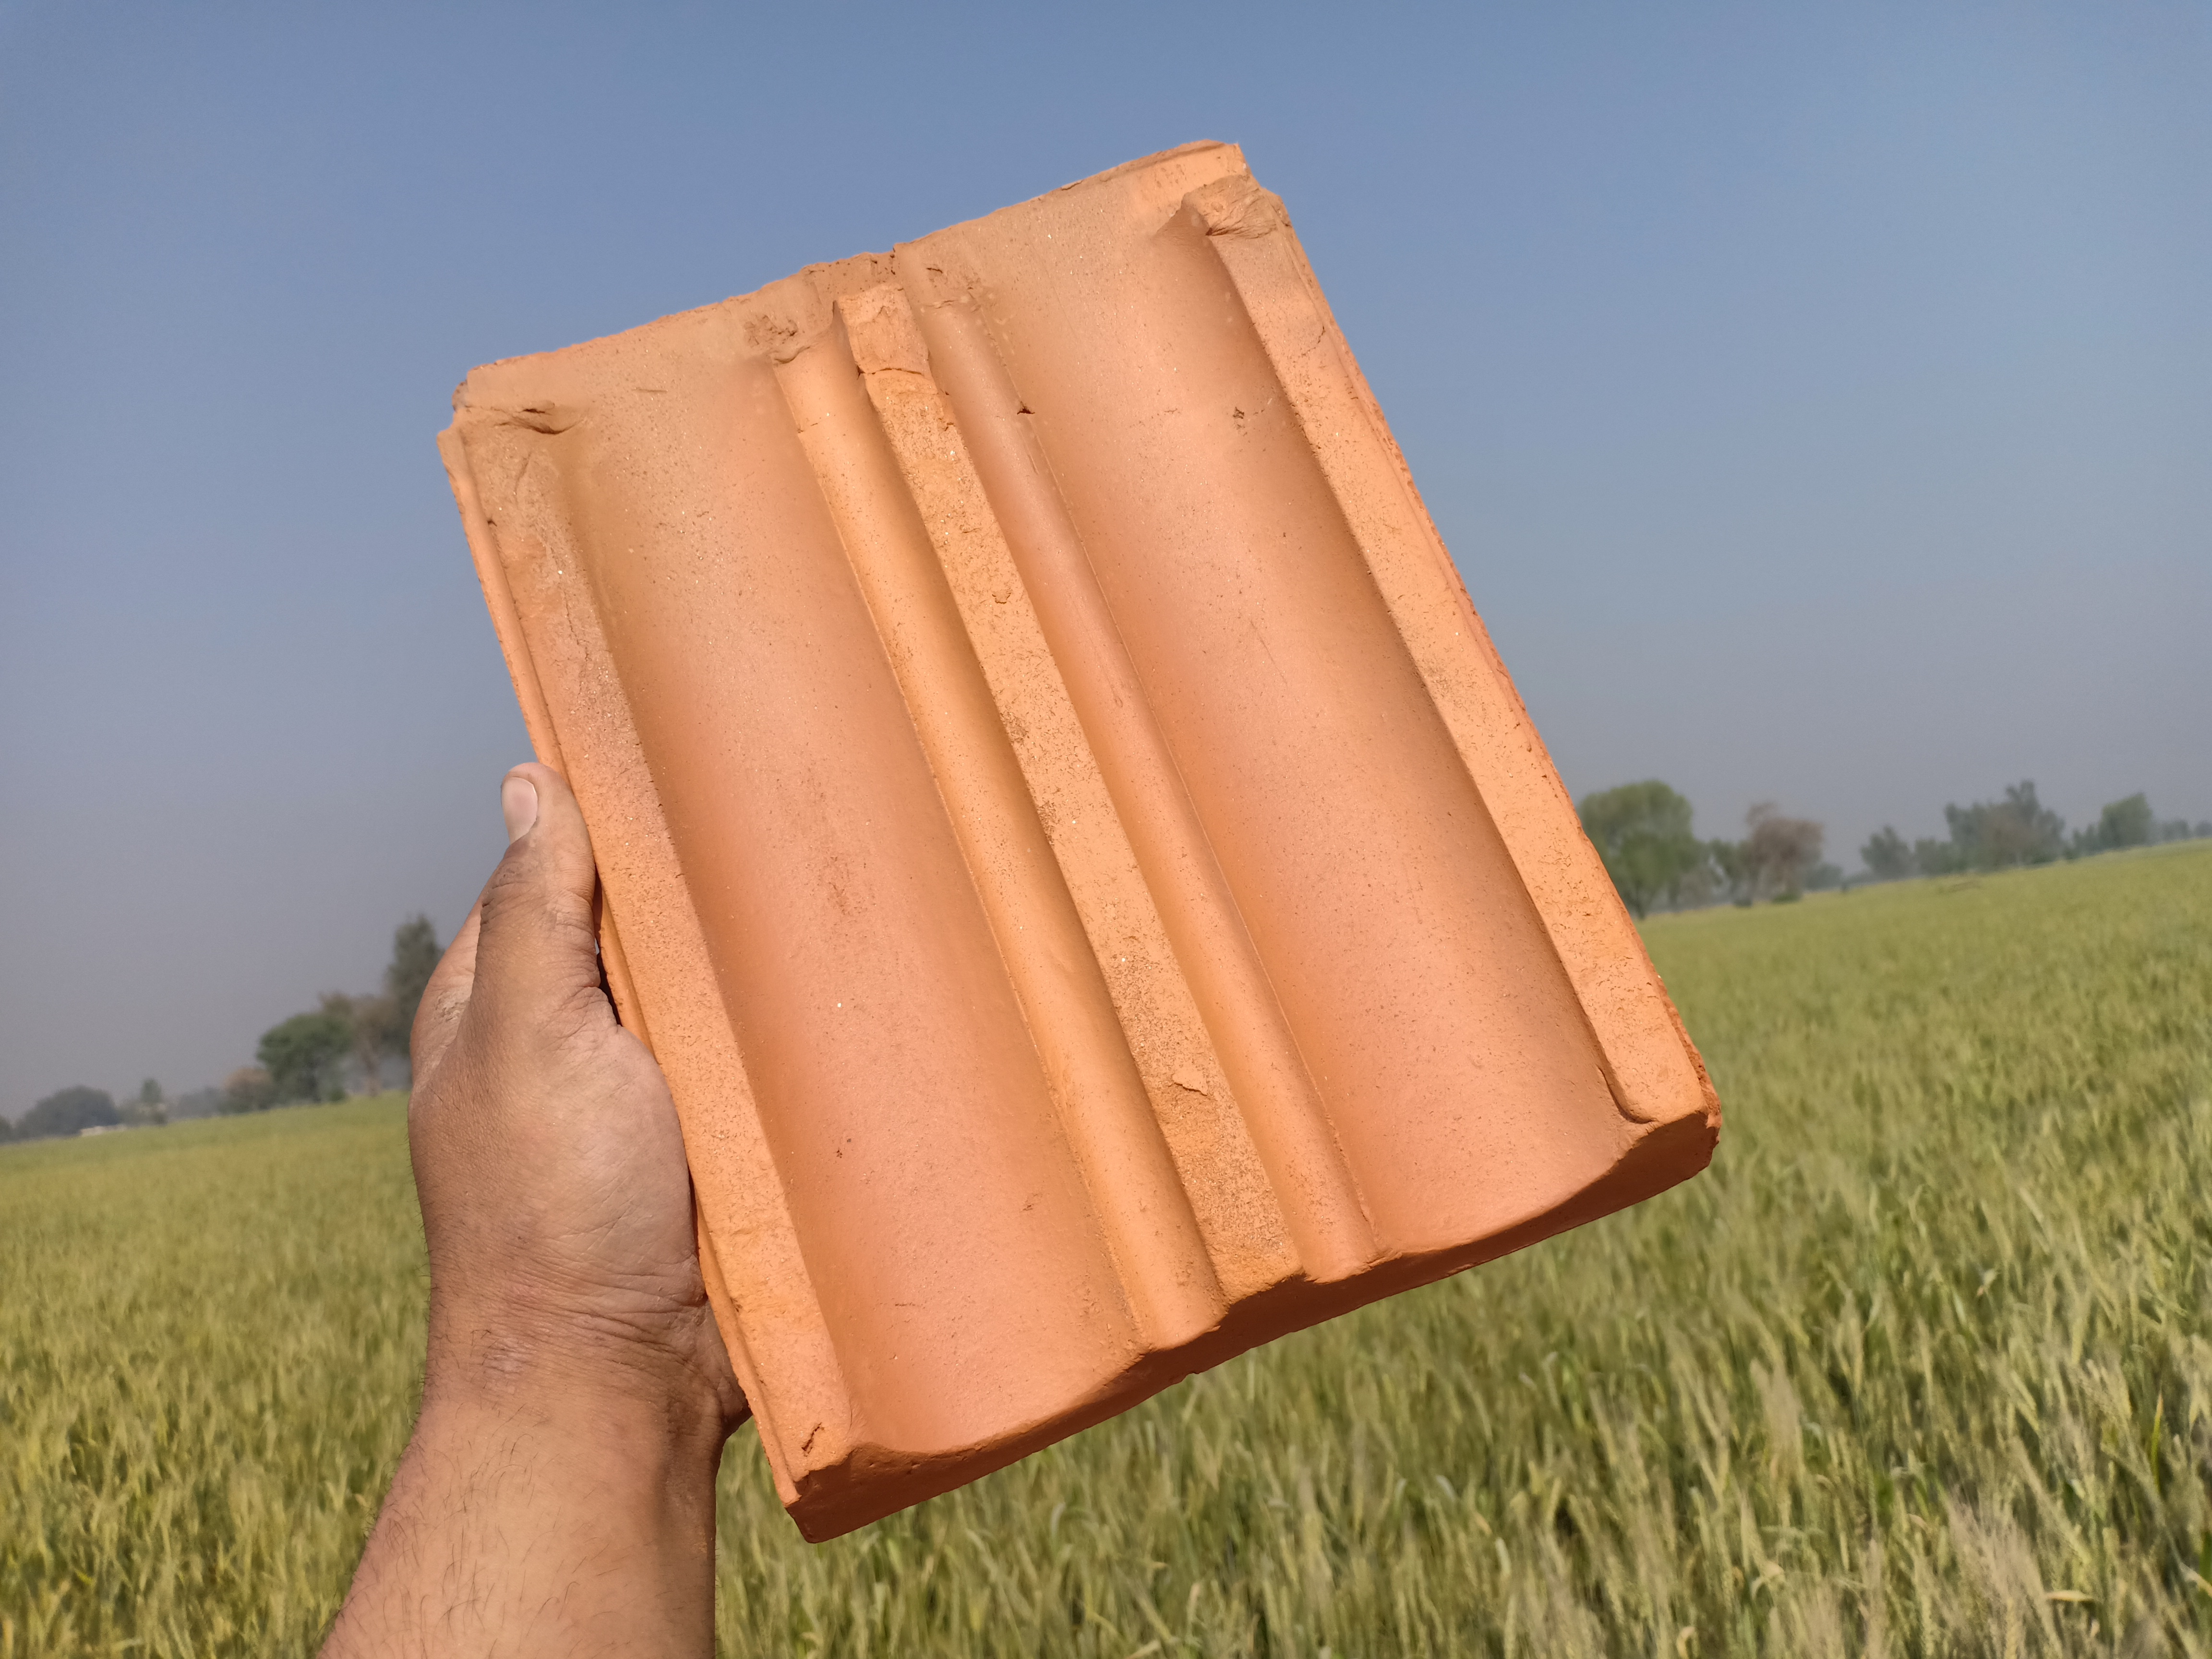 13 Pak Clay Tiles Karachi Disco Roofing Tiles Price in Pakistan Khaprail Tiles Manufacturer.